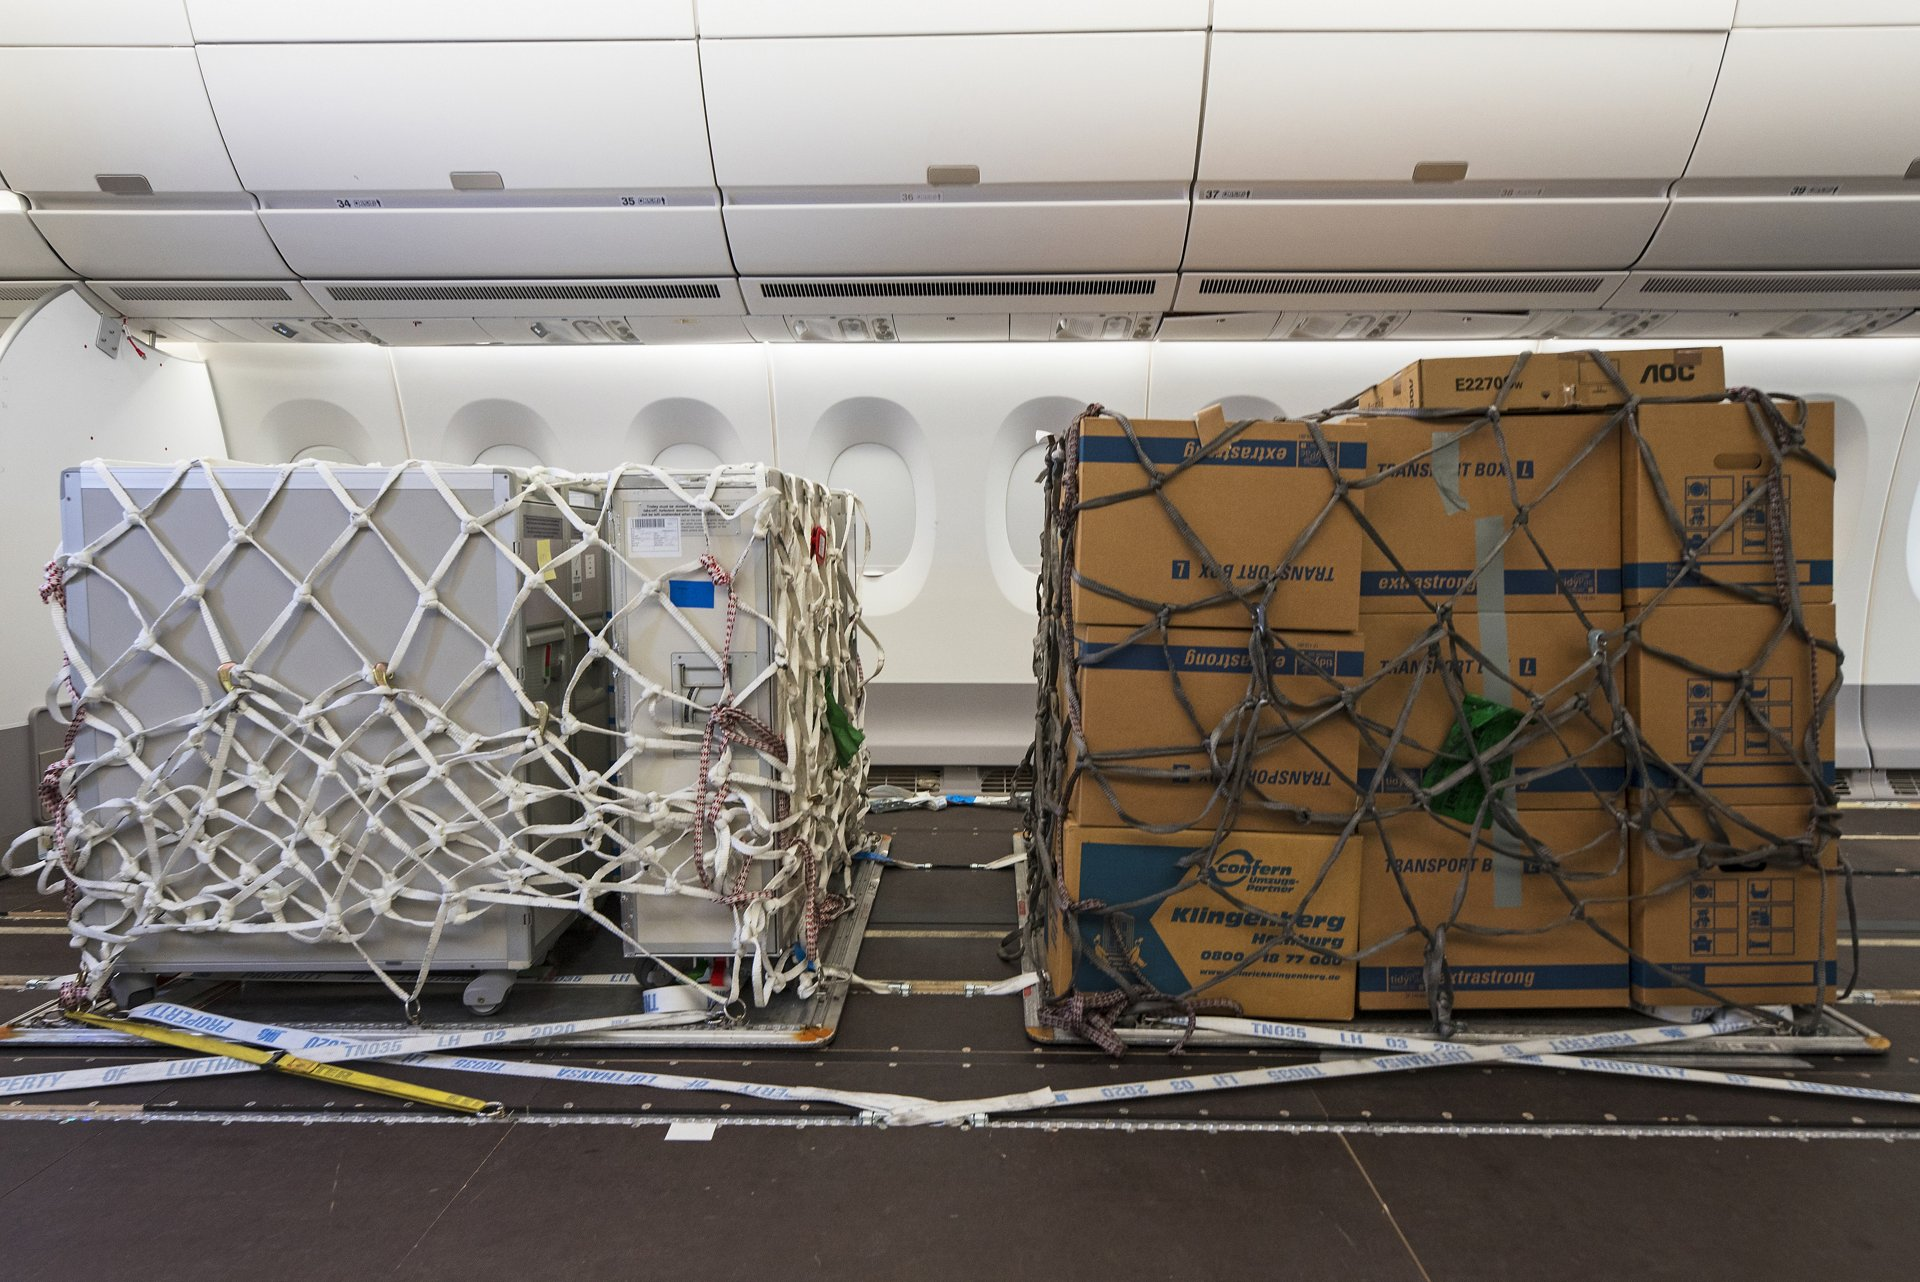 Trial for Cargo in Cabin - 